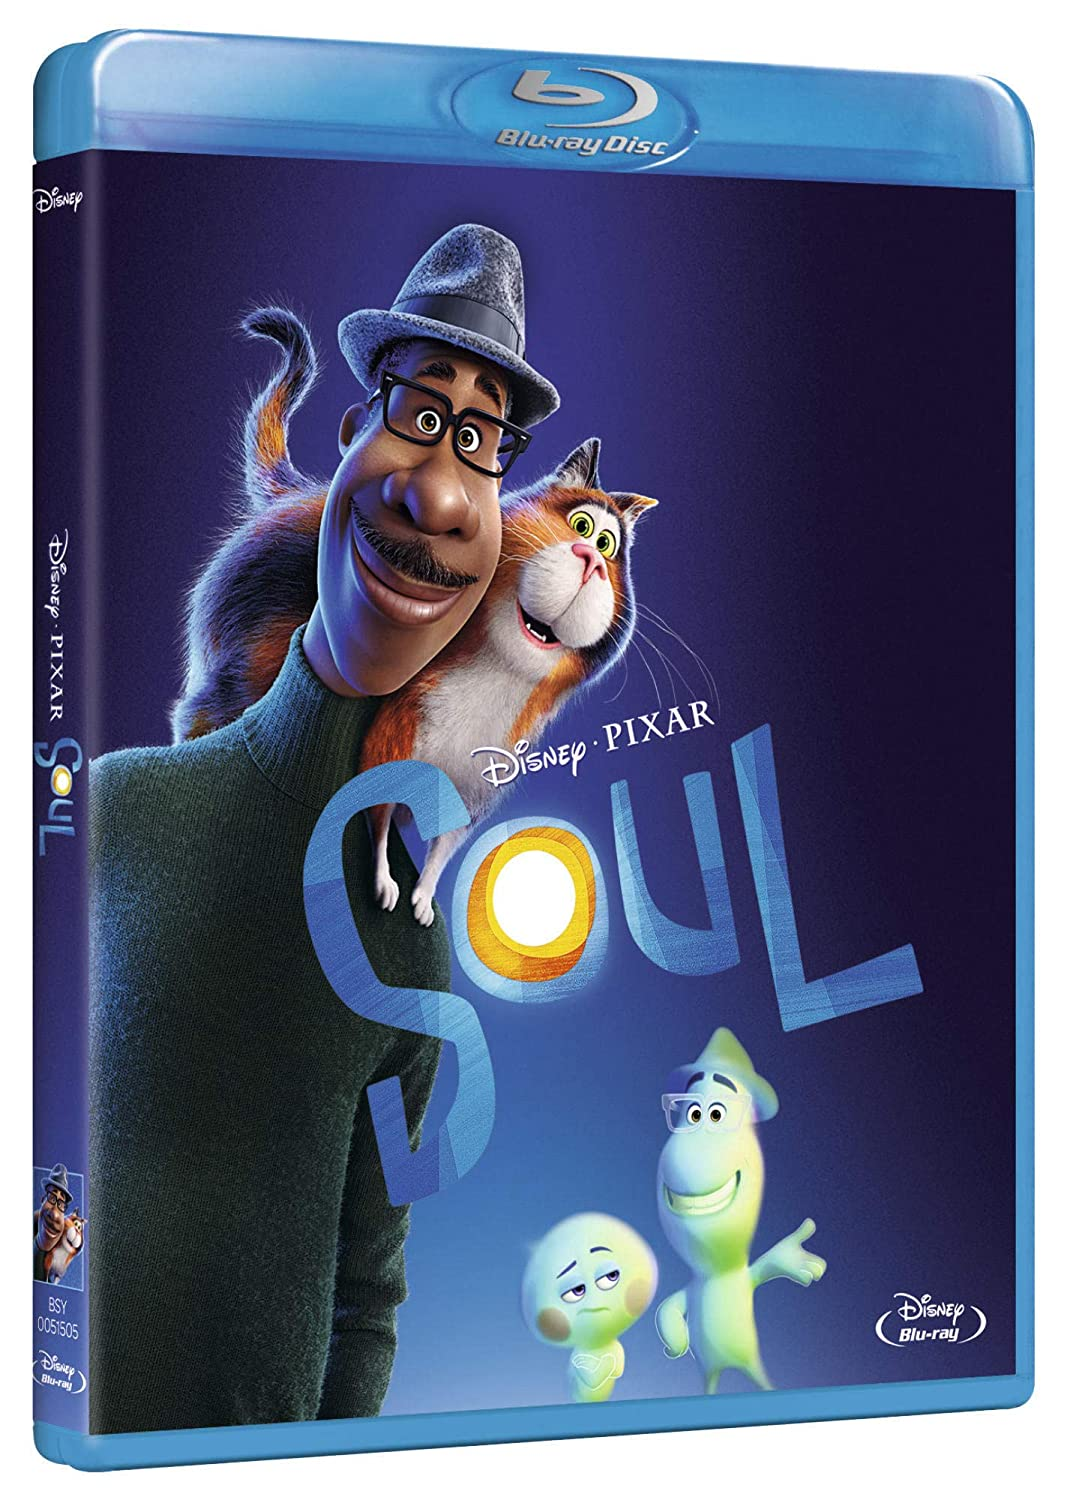 soul_bluray_pixar